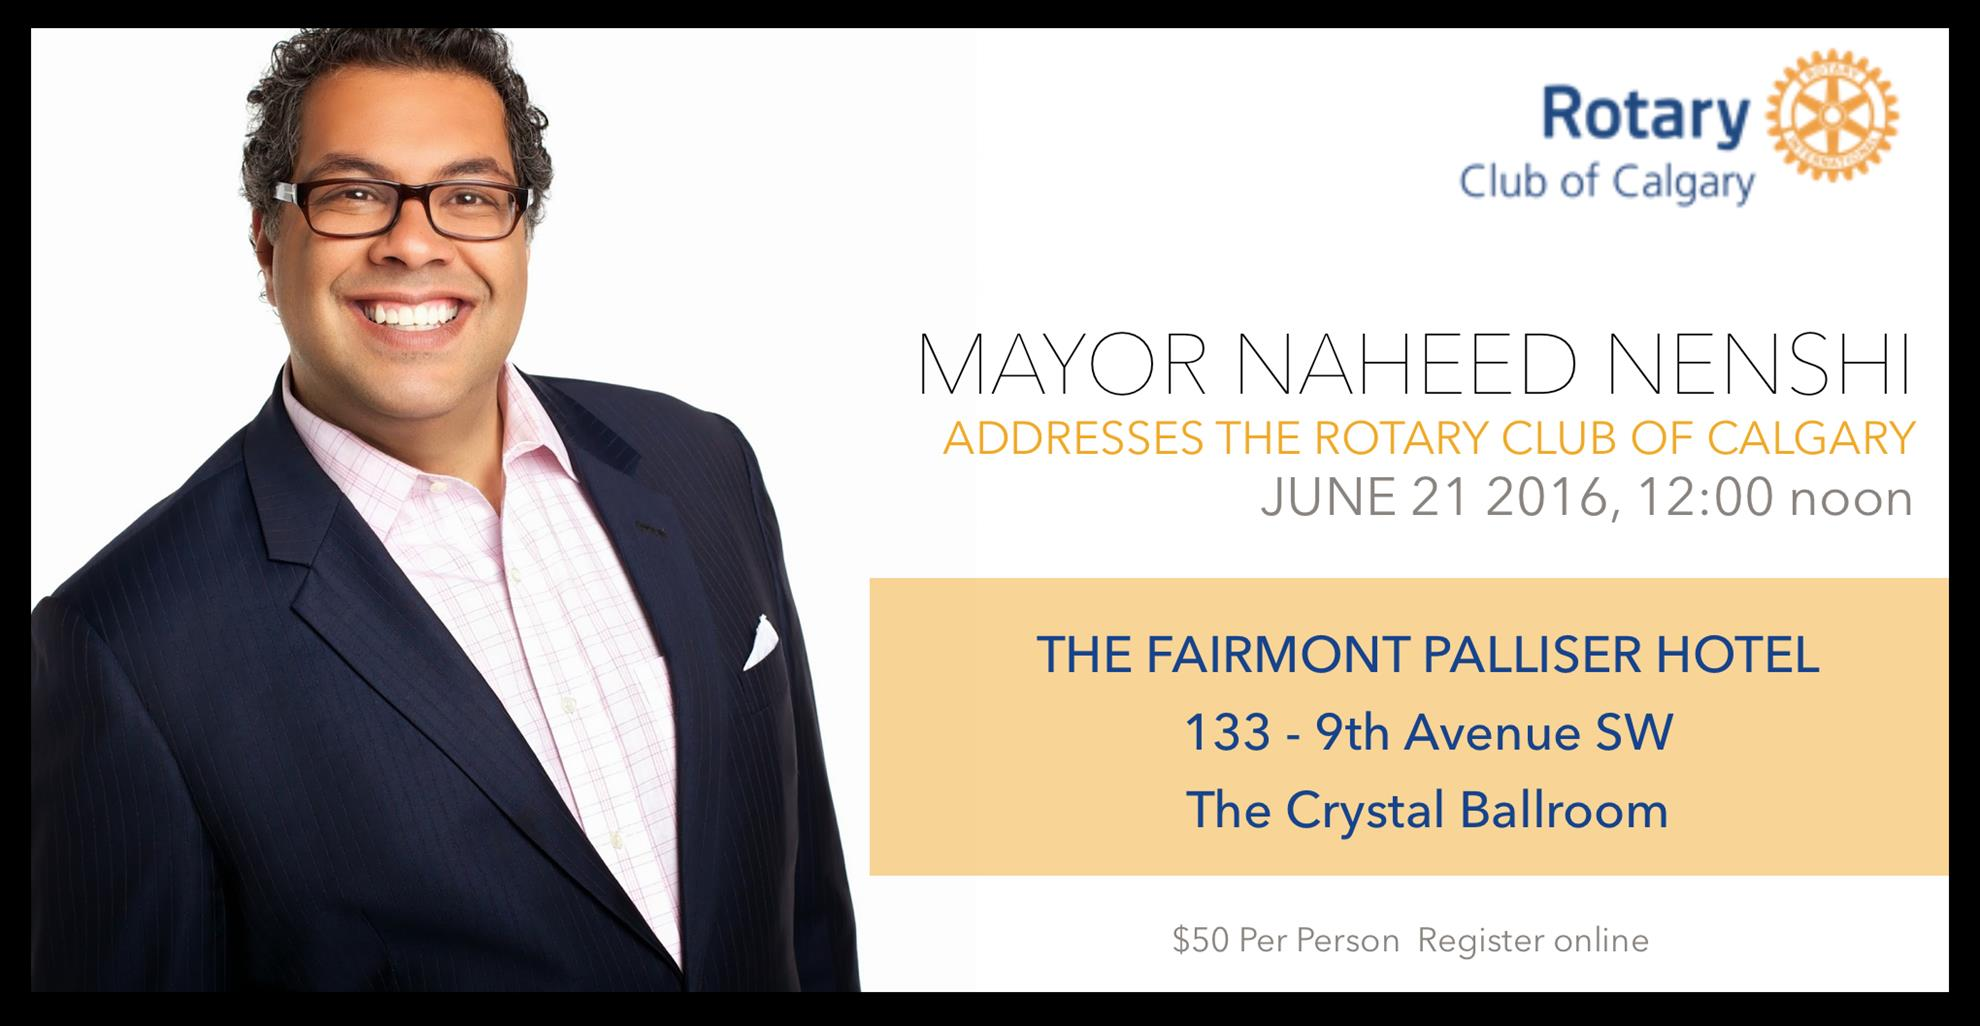 Mayor Naheed Nenshi Lunch Register By June 20 Noon The